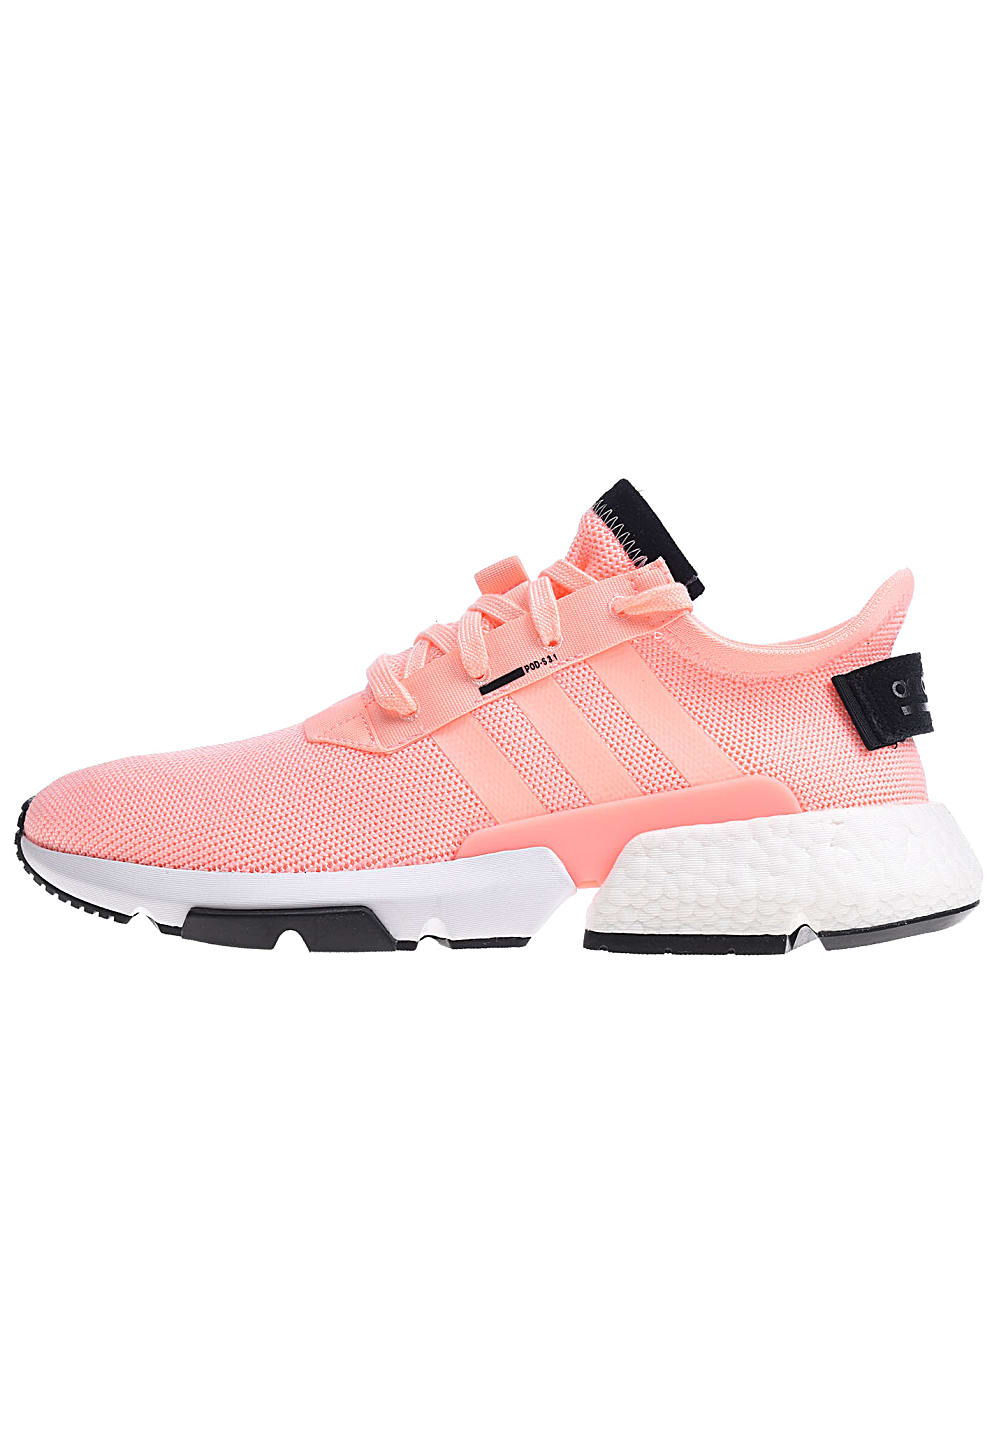 adidas homme rose